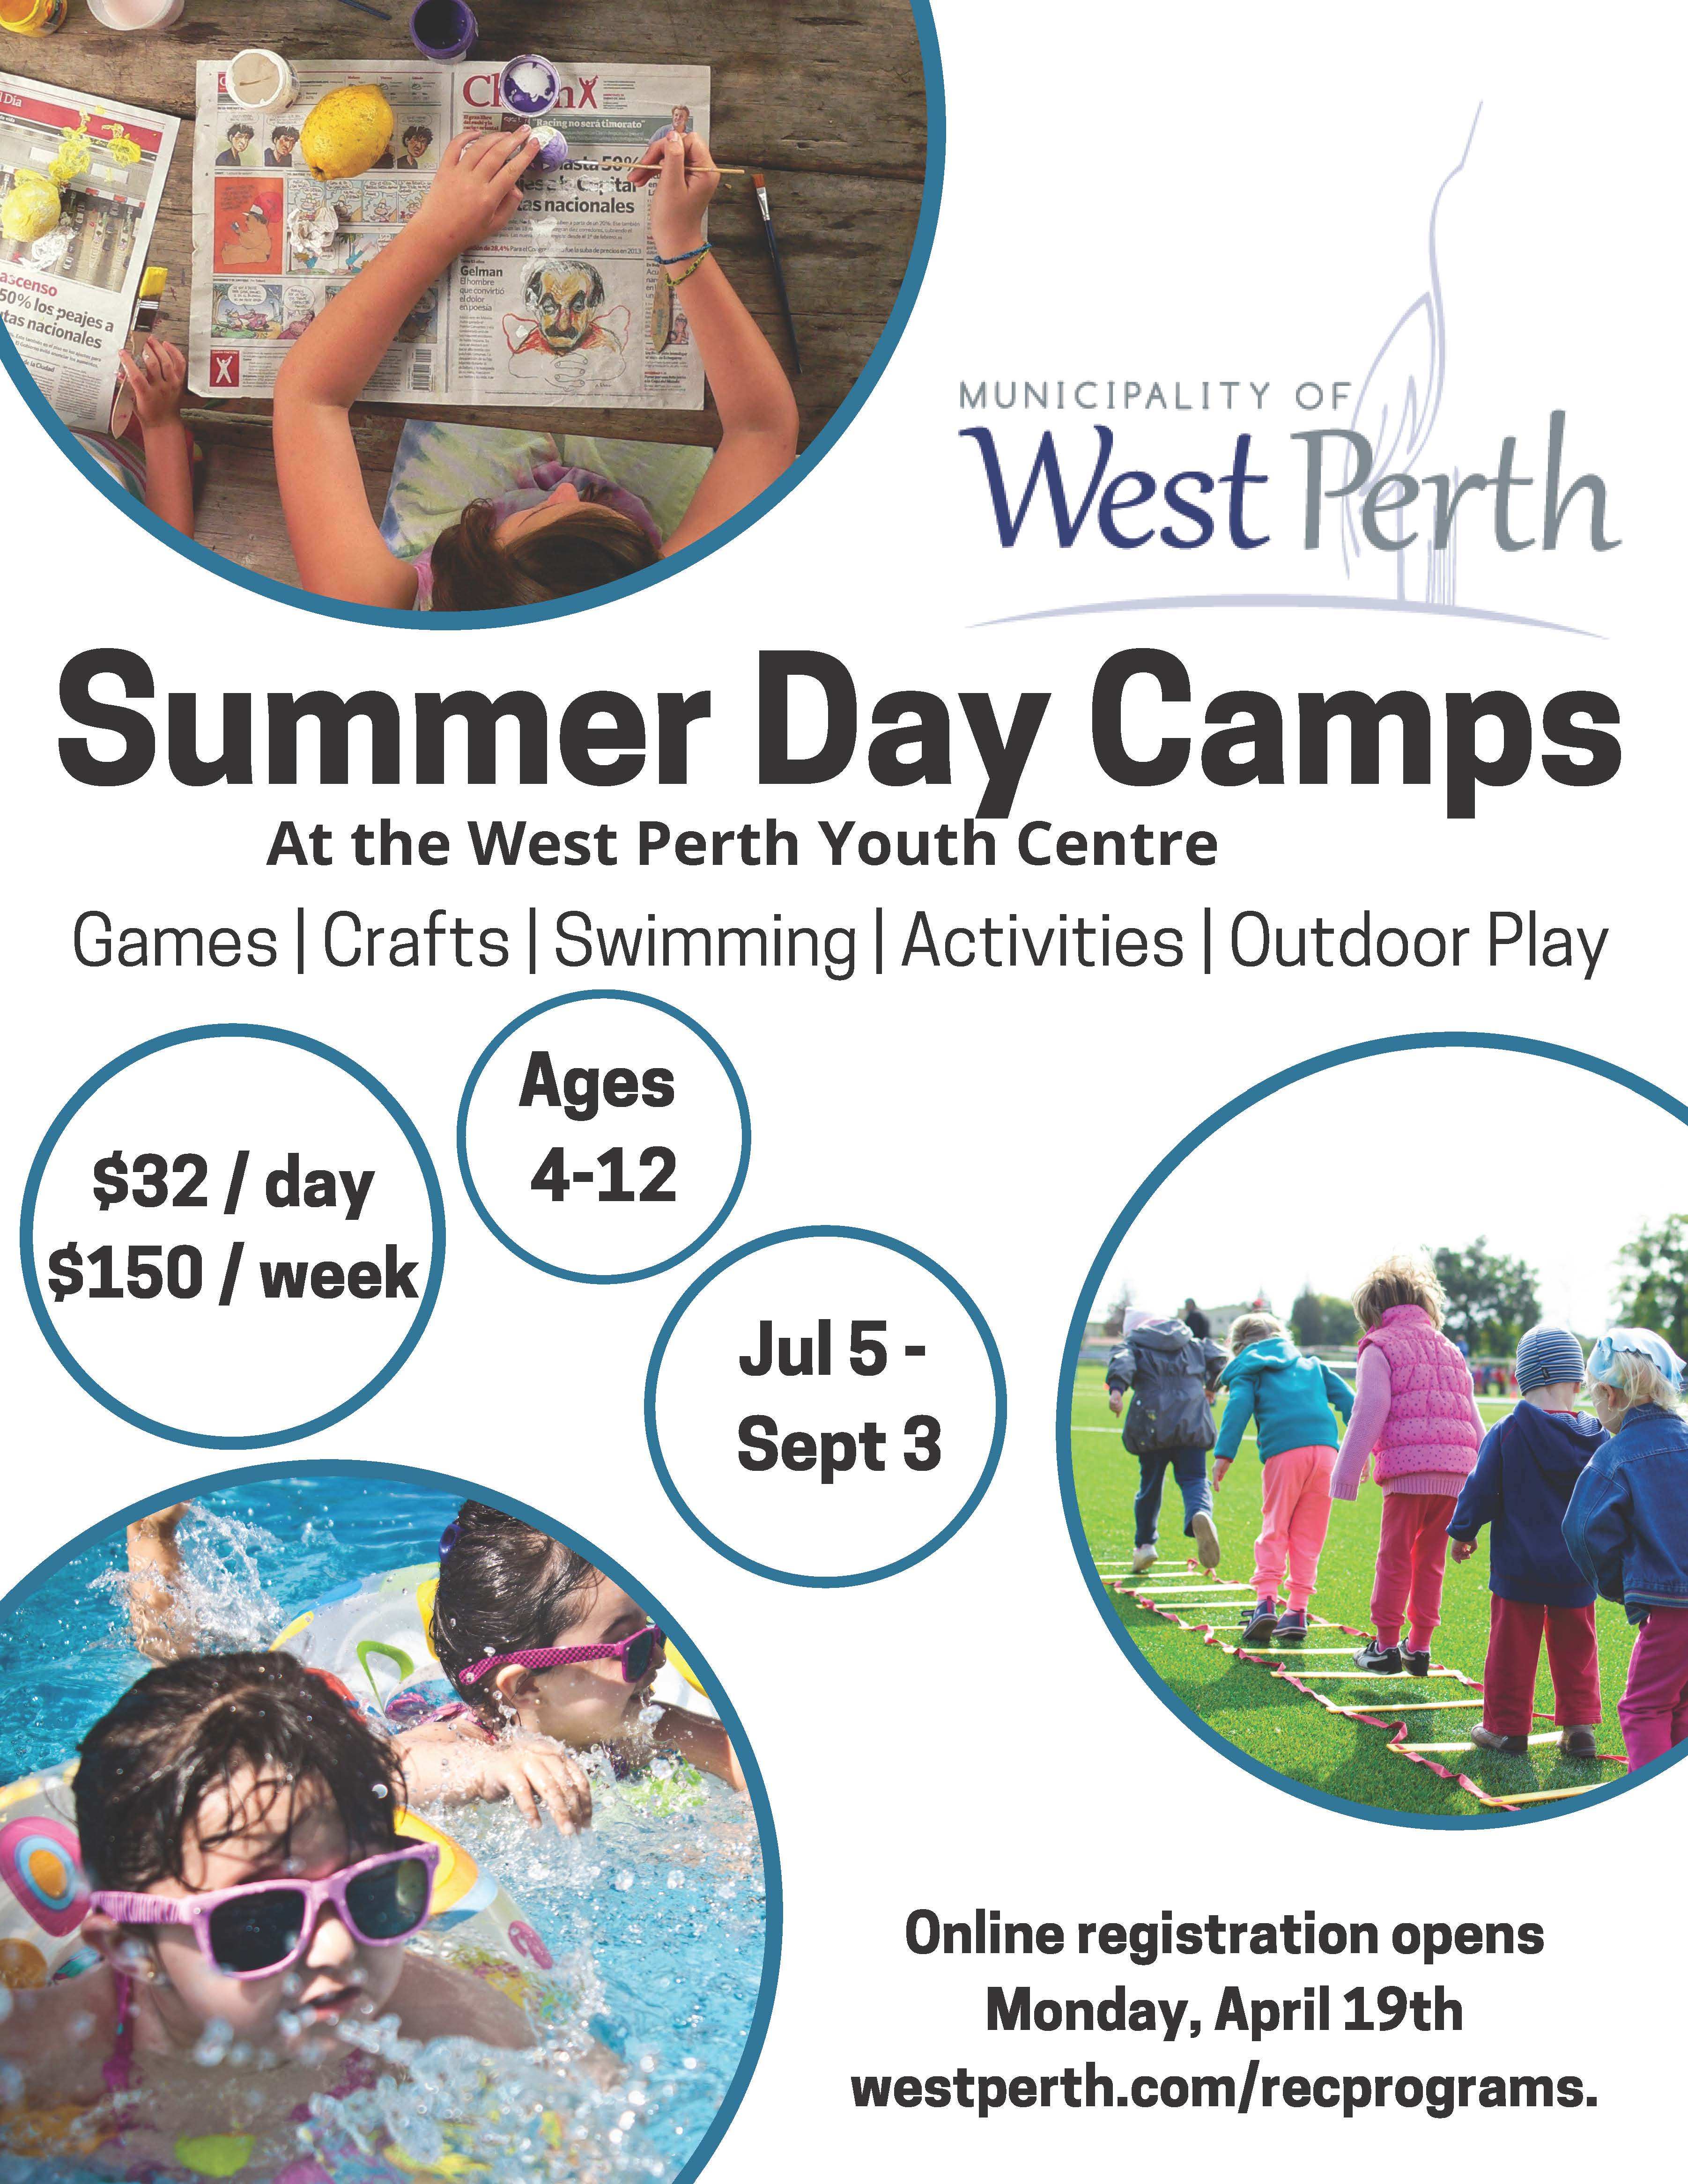 Poster of summer camp activities including swimming, arts and crafts and outdoor play